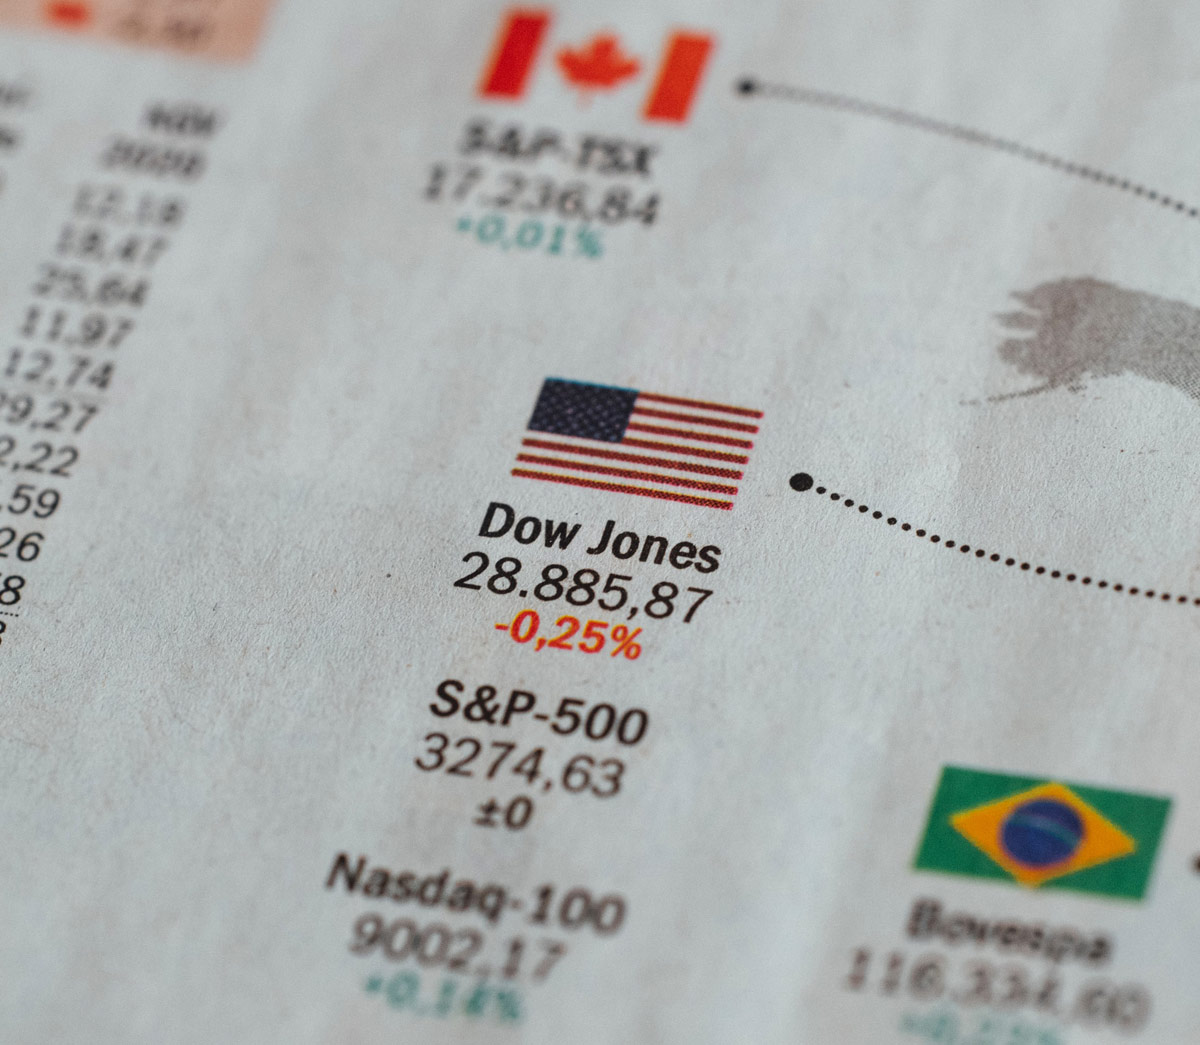 DJSI-new Dow Jones Sustainability Index (DJSI)